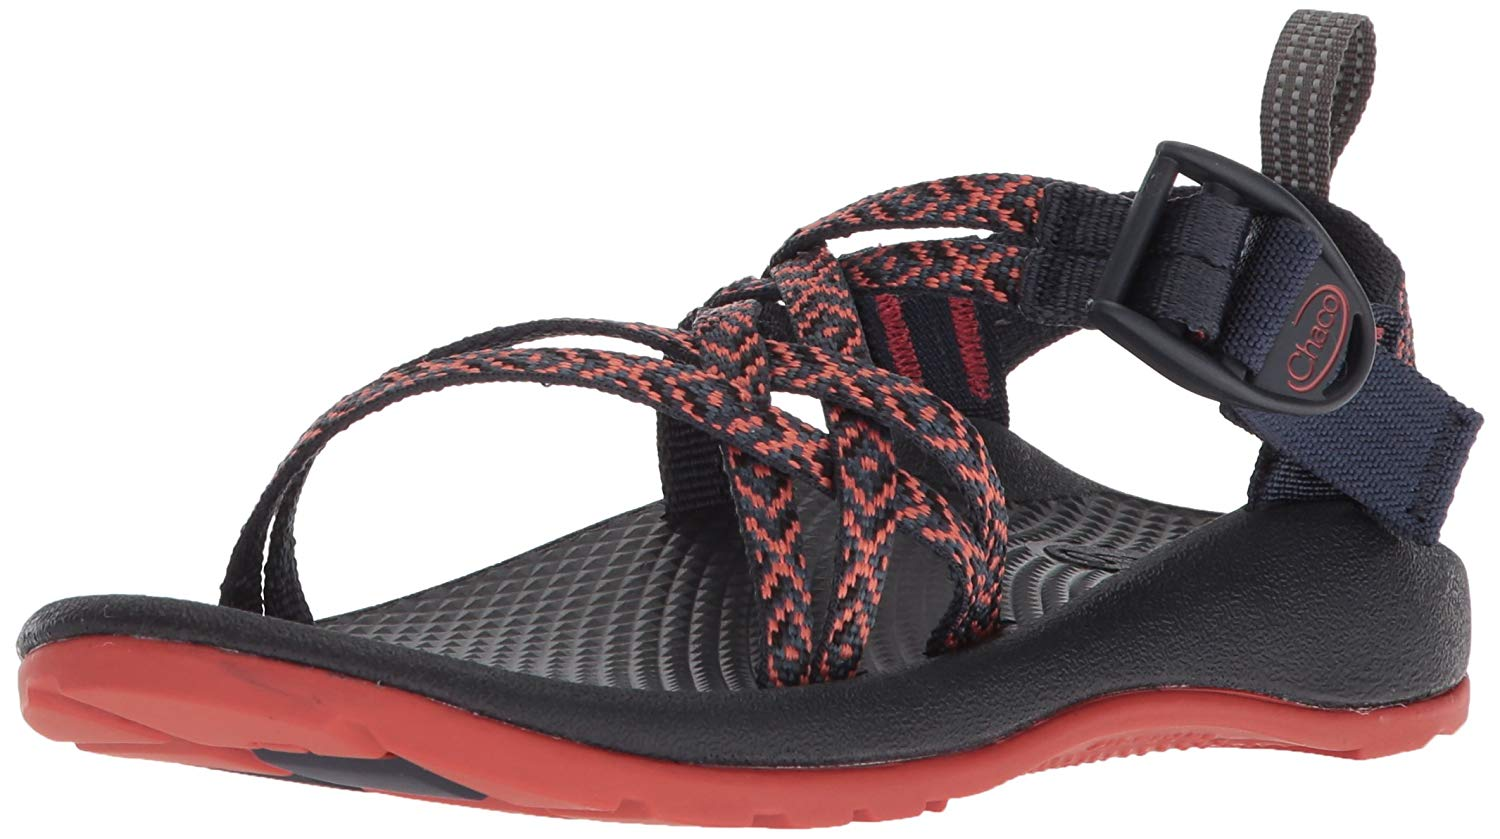 07bf85437afa Chaco ecotread sandal toddler little kid big kid padded eclipse e jpg  1500x839 Chaco zx1